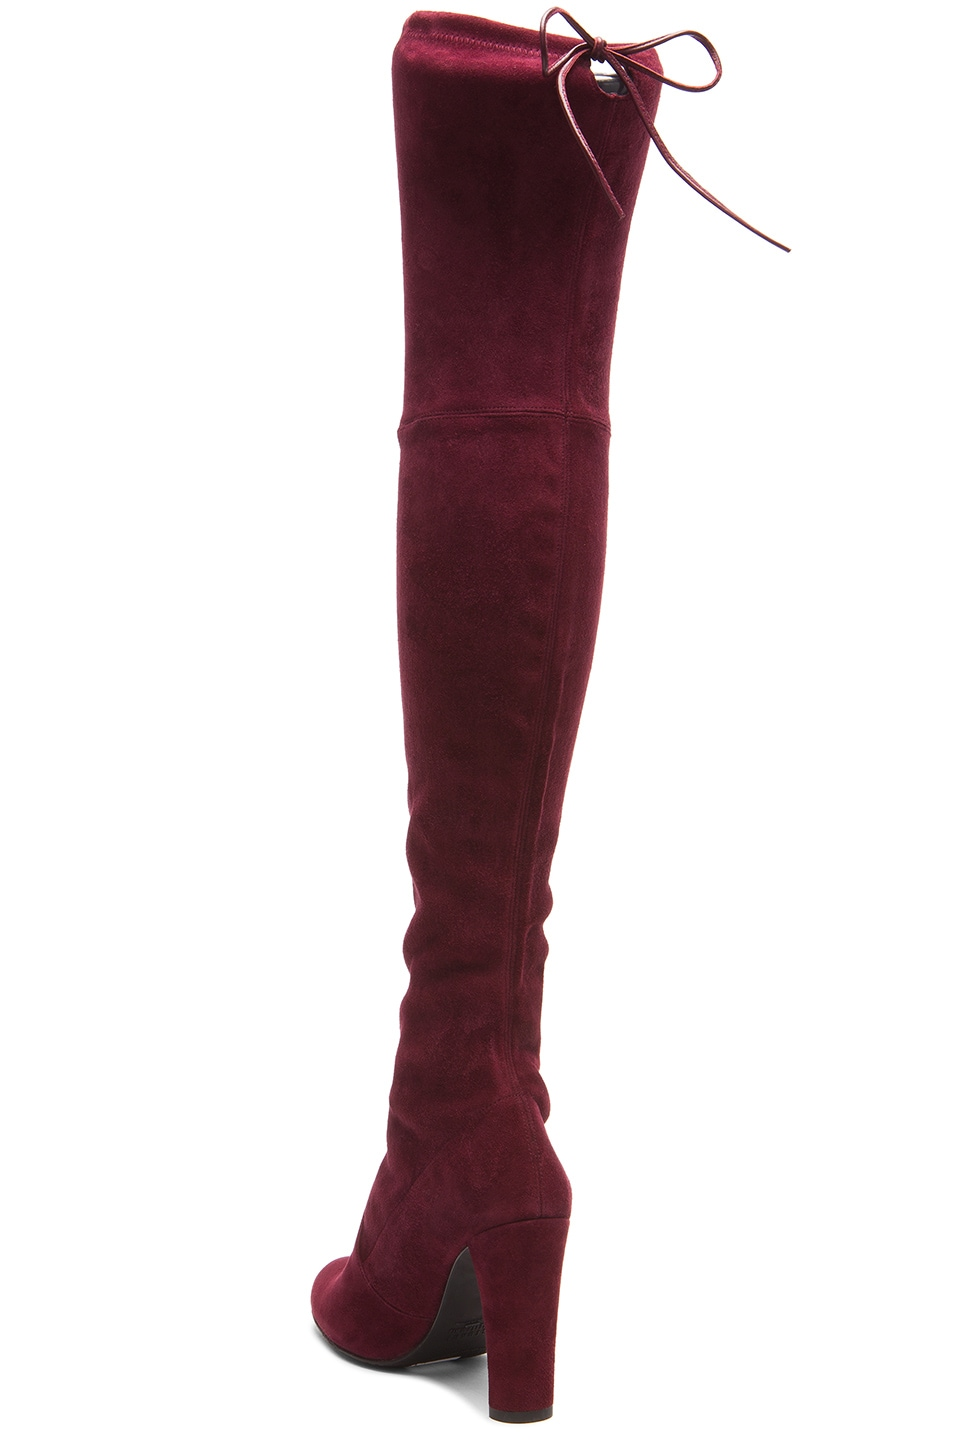 Image 3 of Stuart Weitzman Highland Suede Boots in Bordeaux Suede